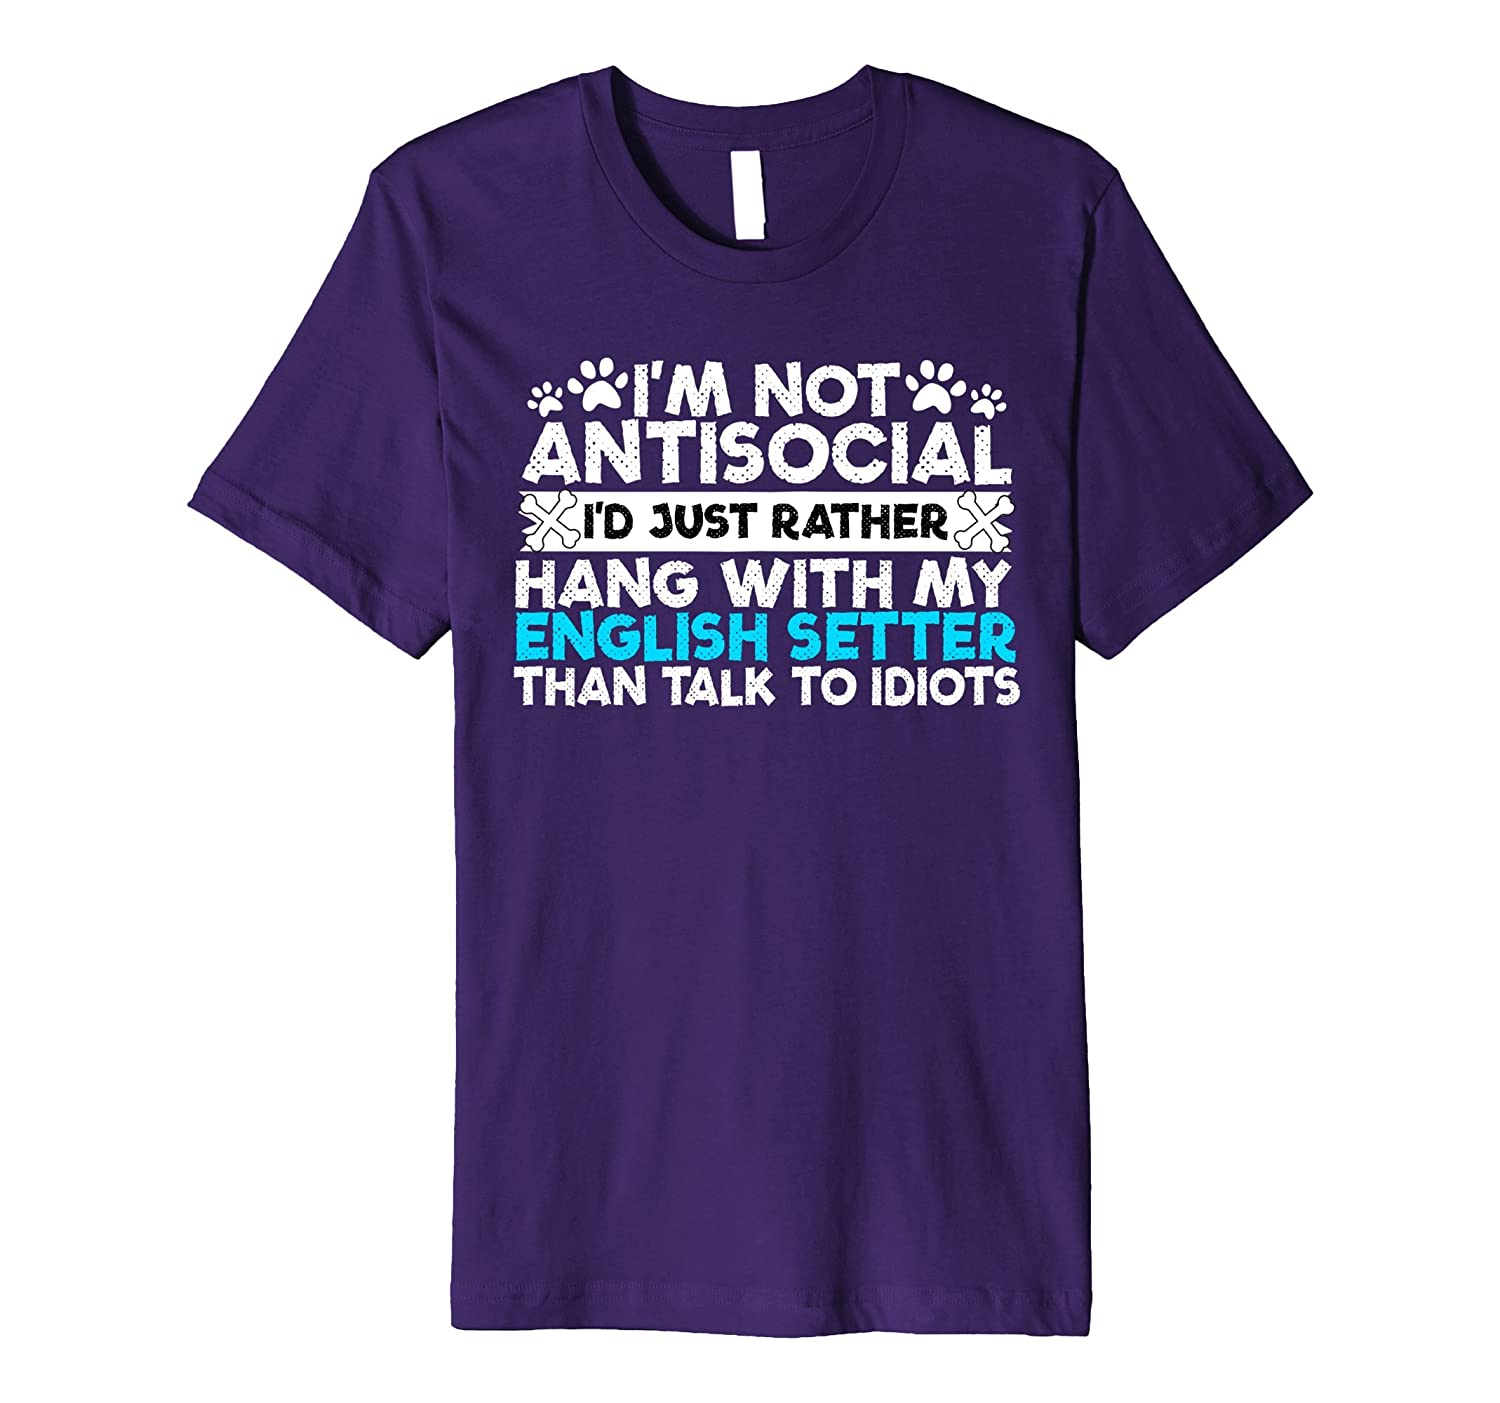 I would rather hang with my ENGLISH SETTER shirt-ah my shirt one gift